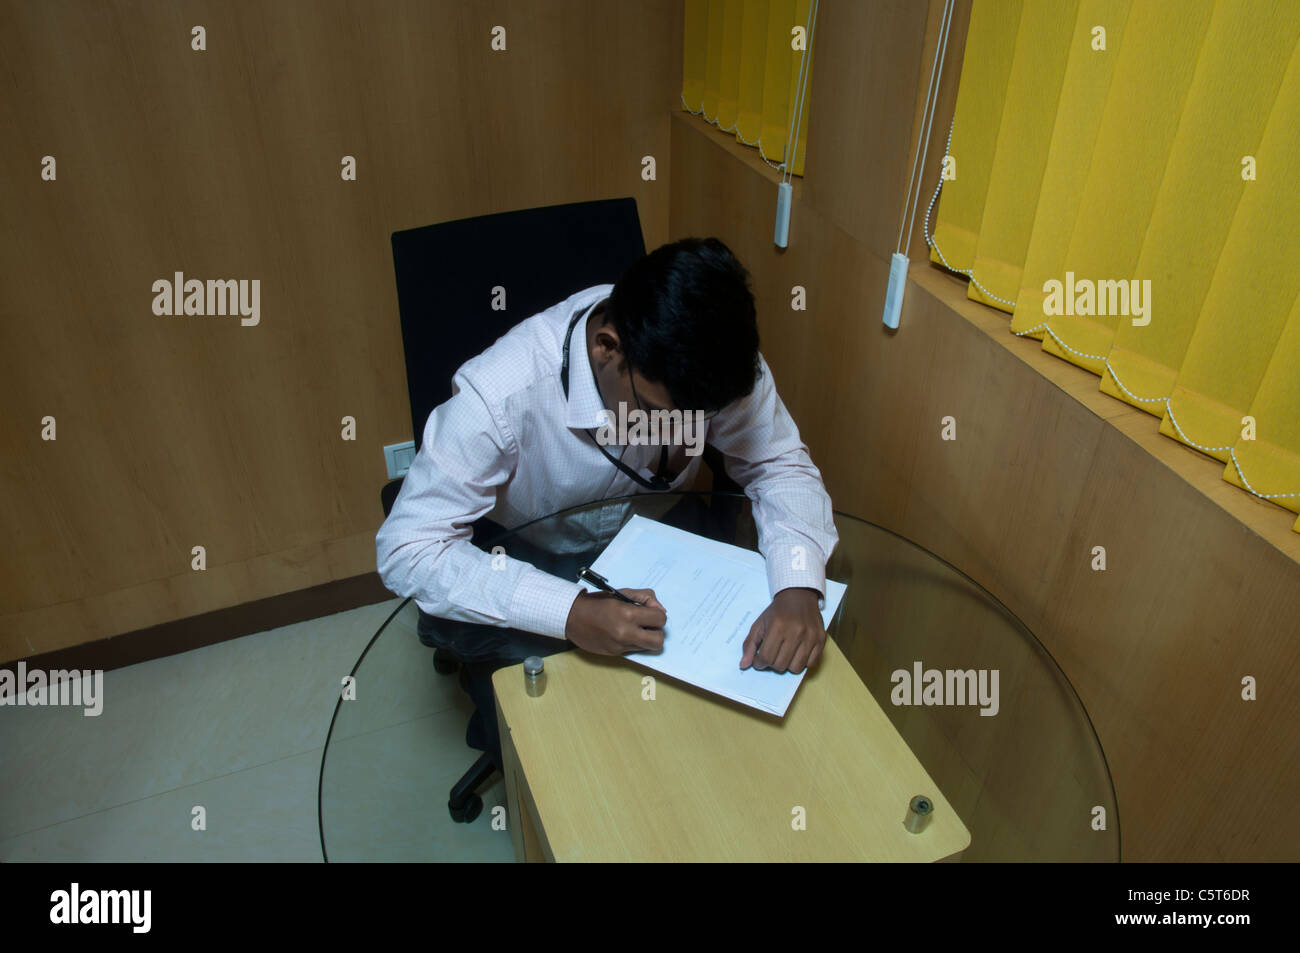 Young Indian Man At Work In Office Cabin   Stock Image